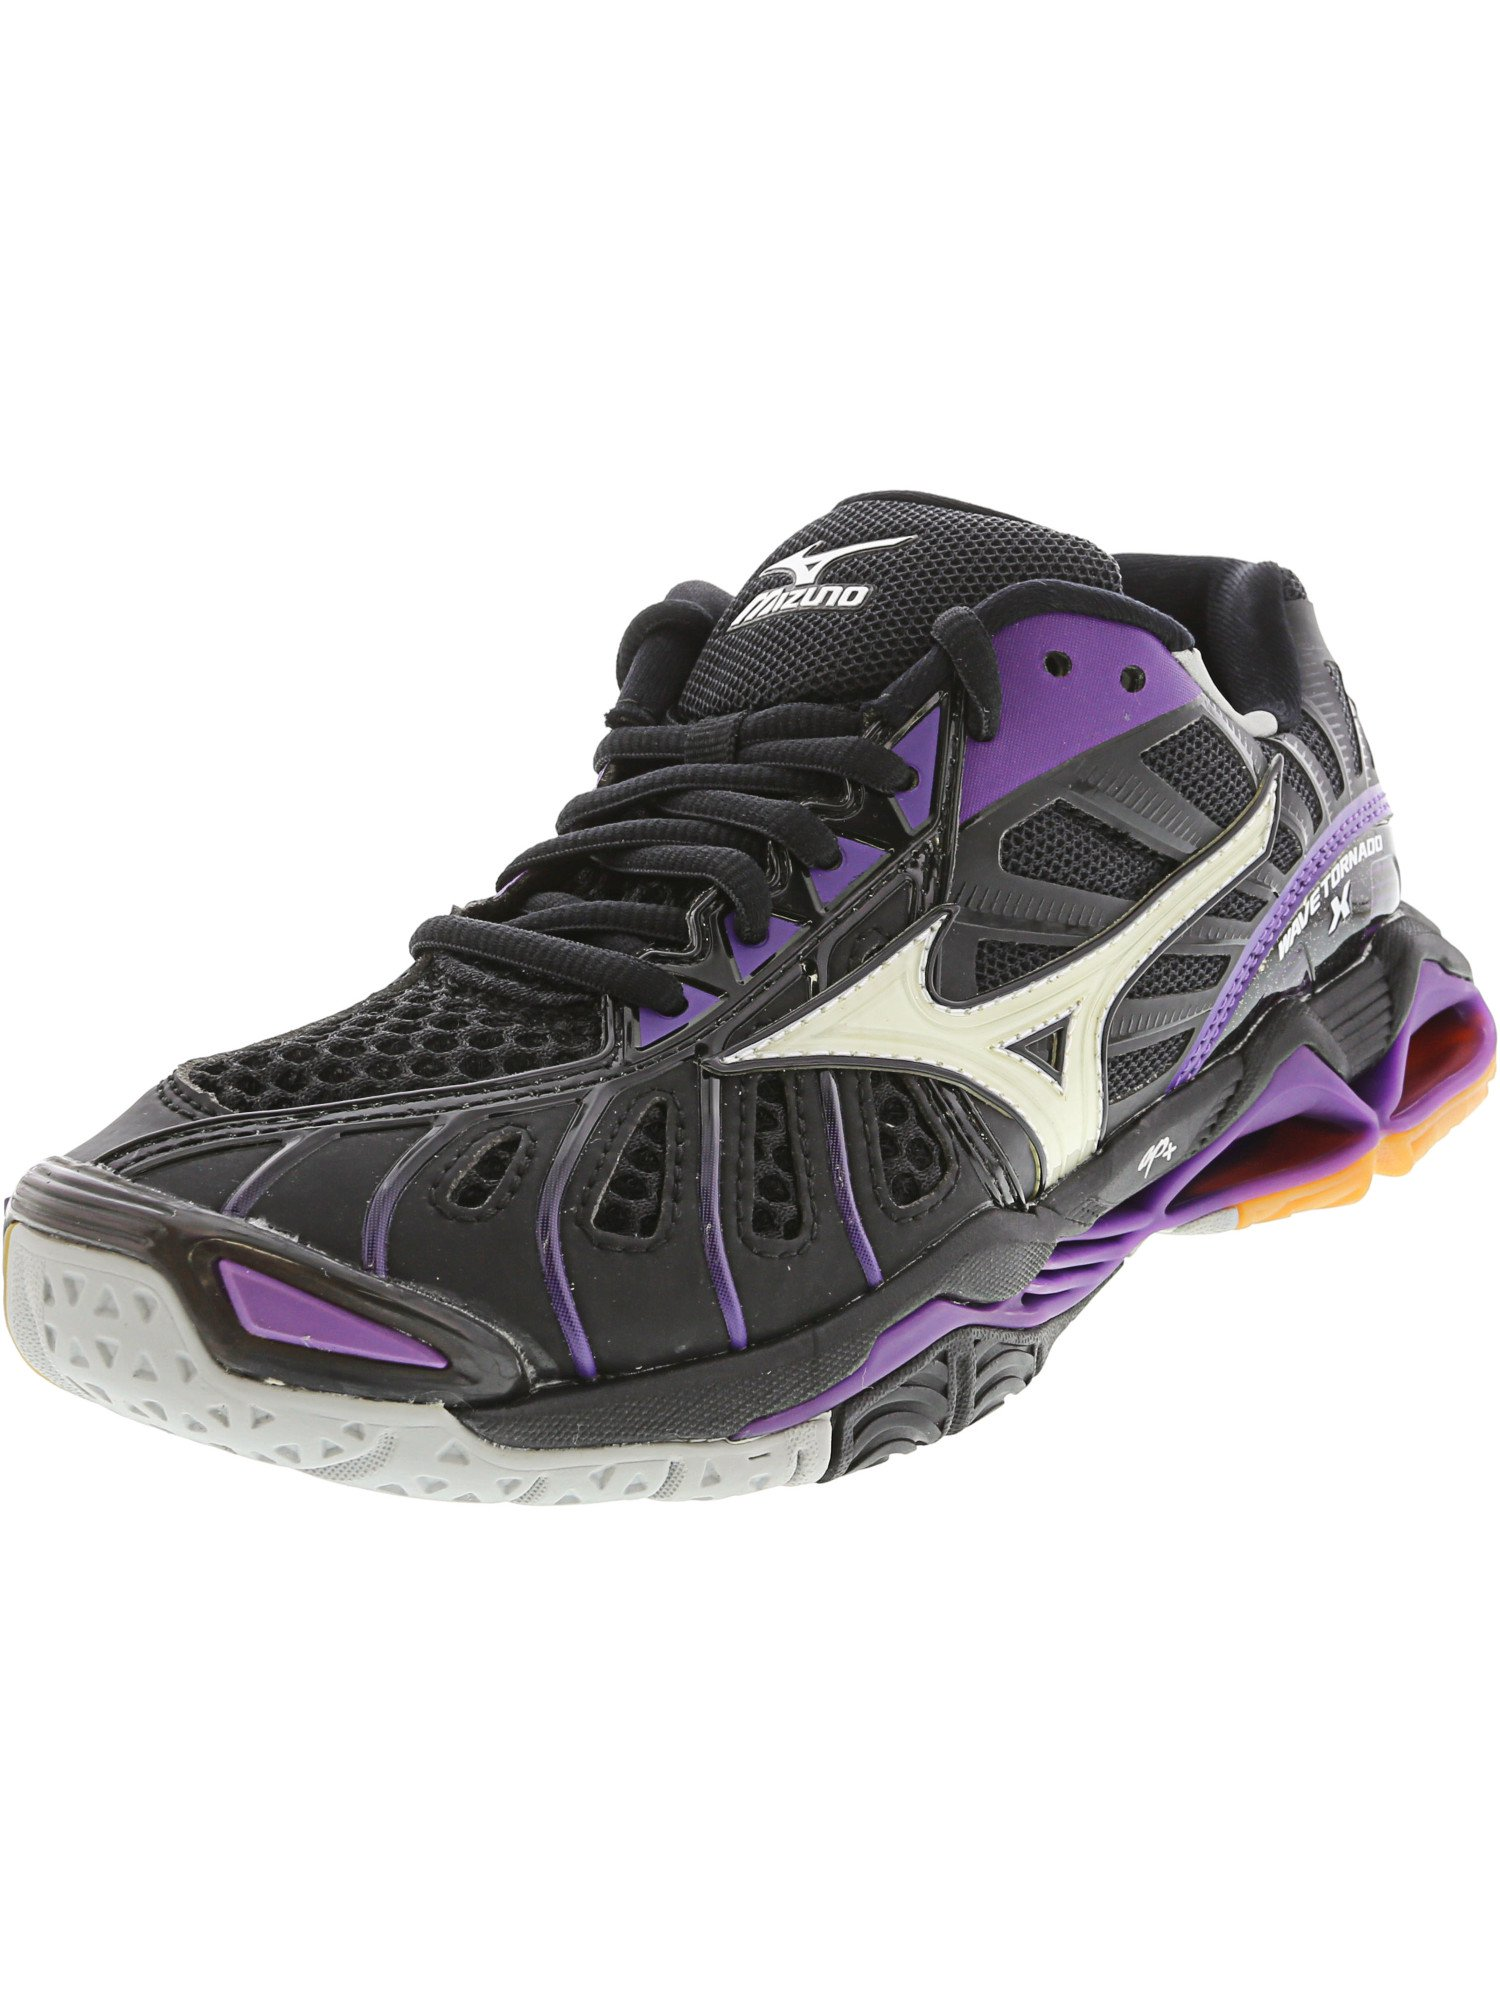 mizuno women's wave tornado 7 volleyball shoes